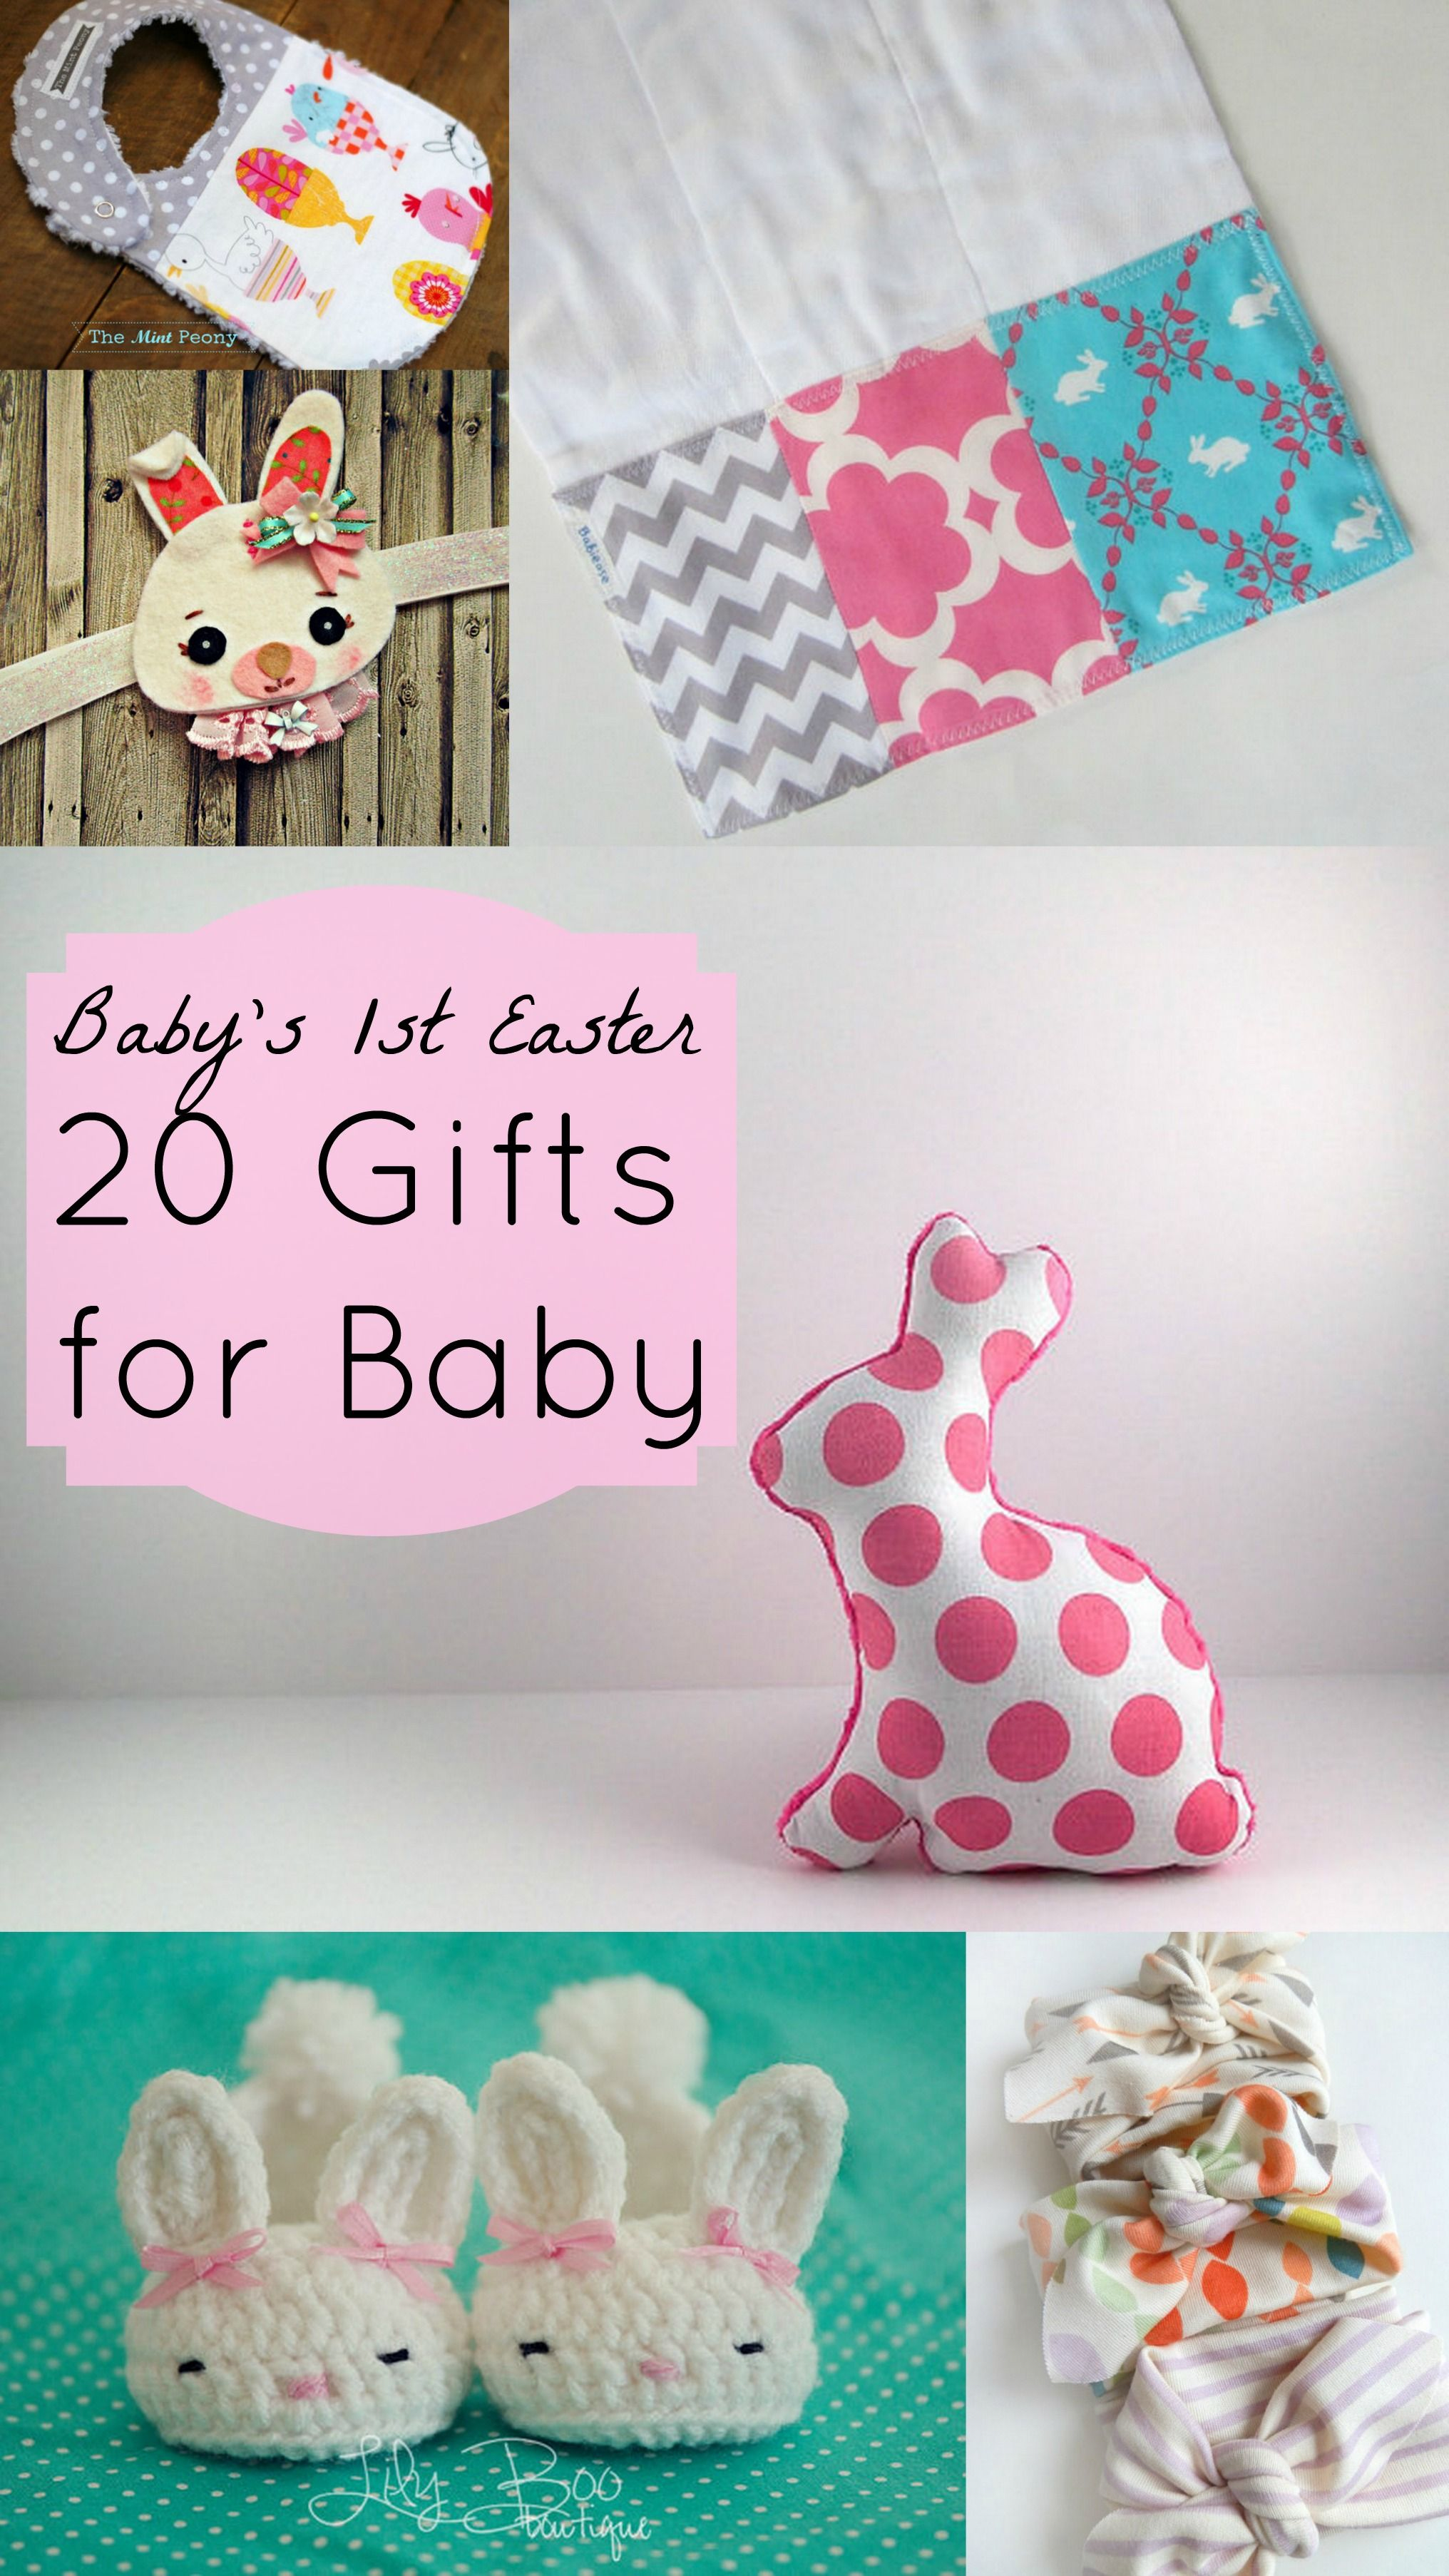 10 must have gifts for your babys first easter basket easter babys 1st easter 20 gifts for the easter basket ashlee perry negle Images